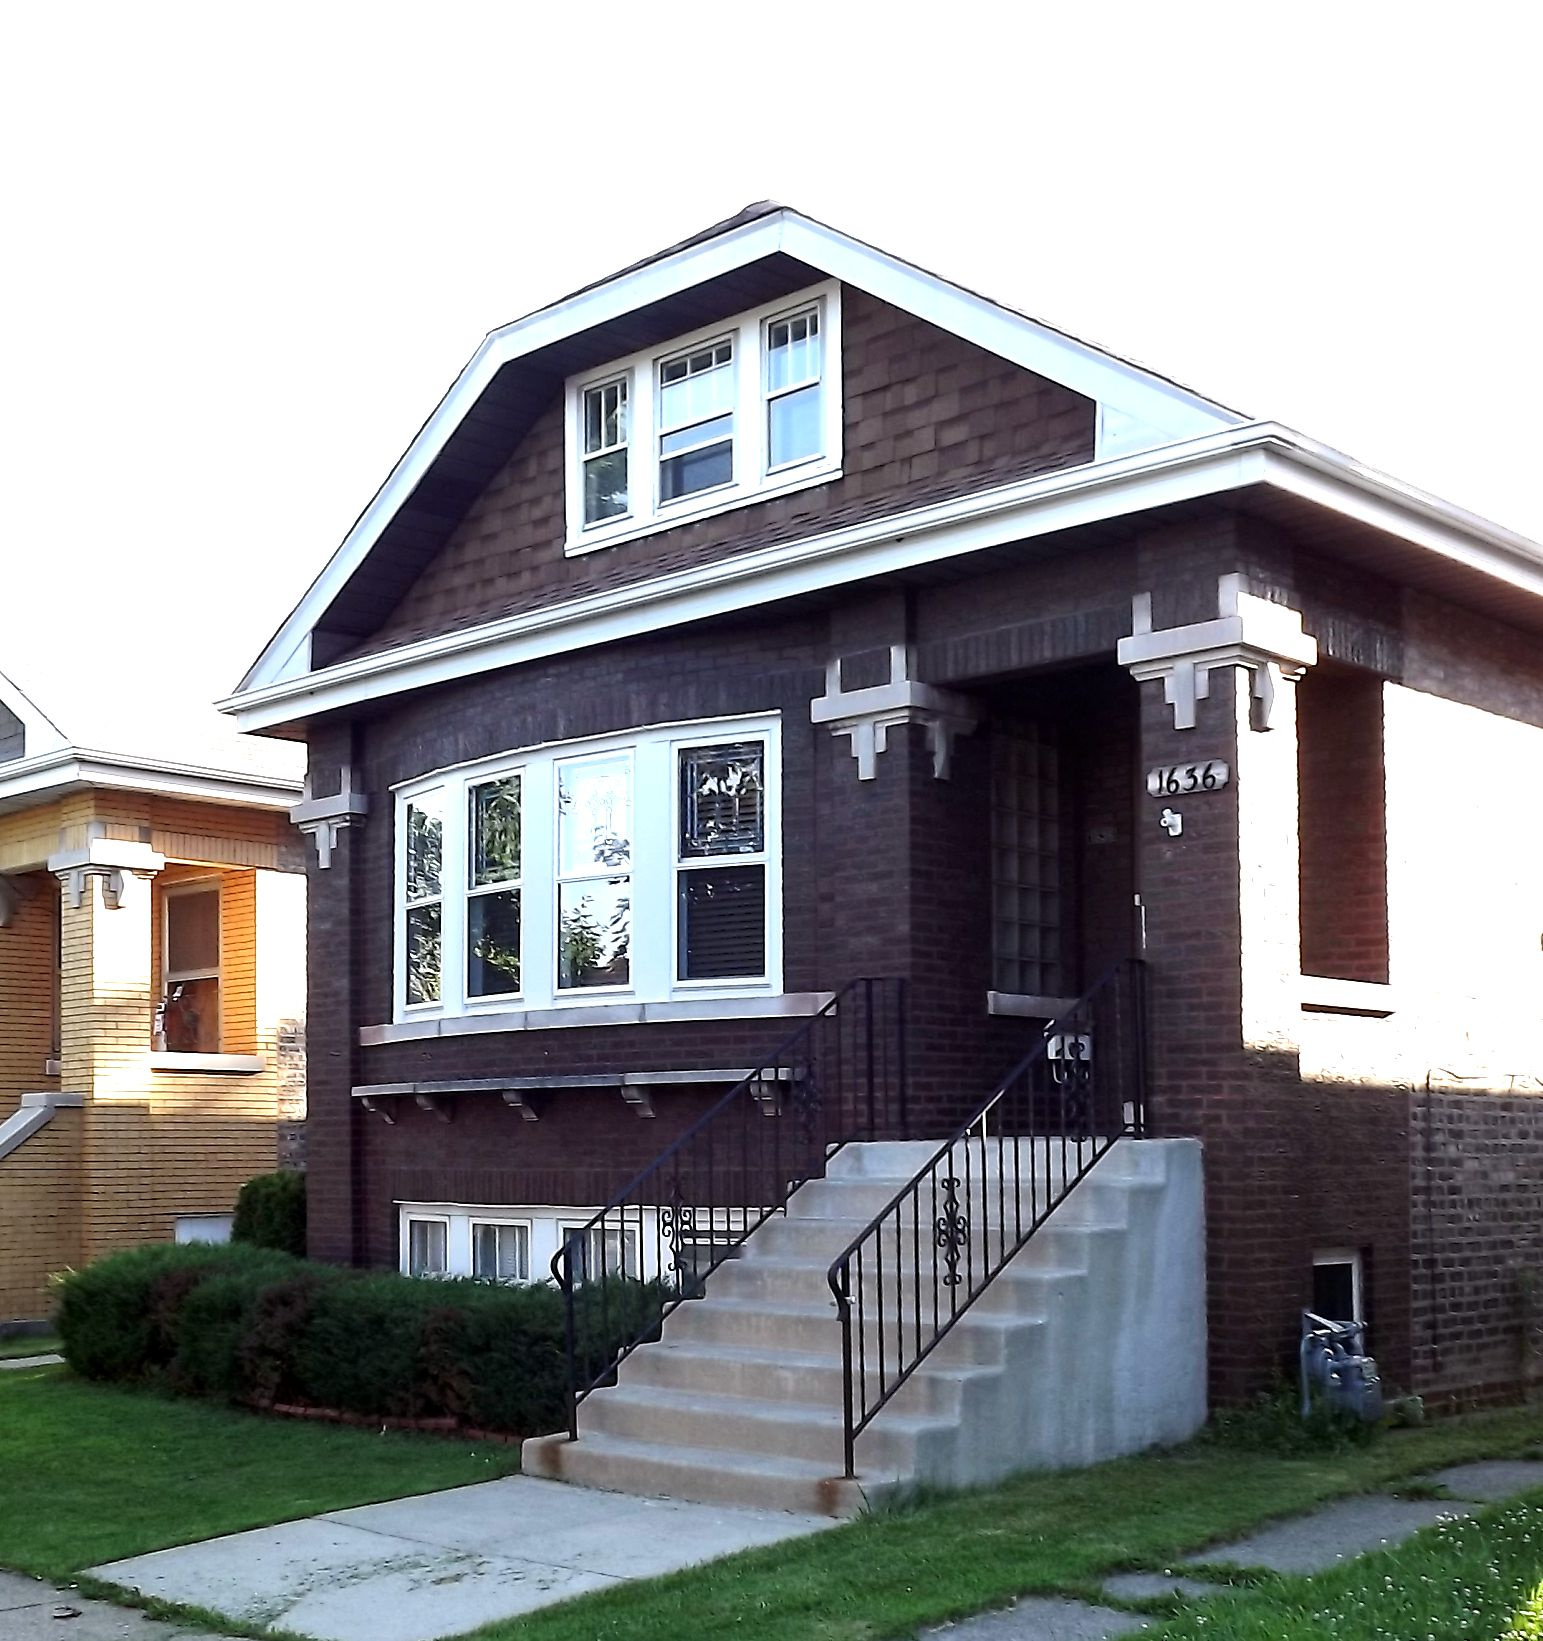 Berwyn il historic chicago bungalow best of the for Bungalow house chicago